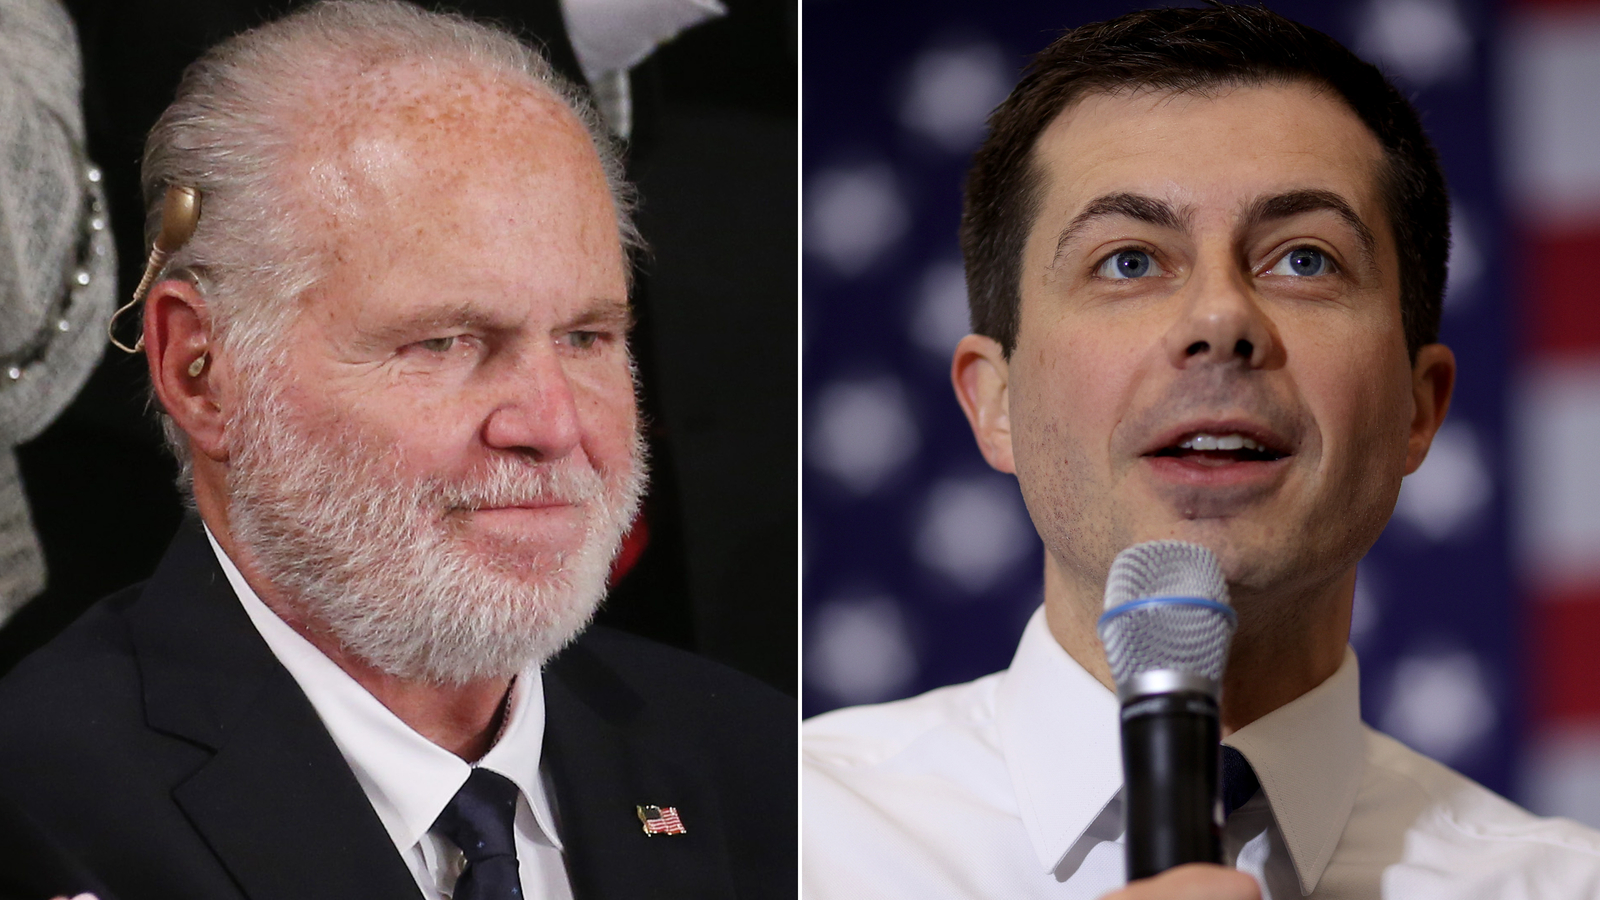 Buttigieg responds to Limbaugh's homophobic remarks: 'I love my husband'